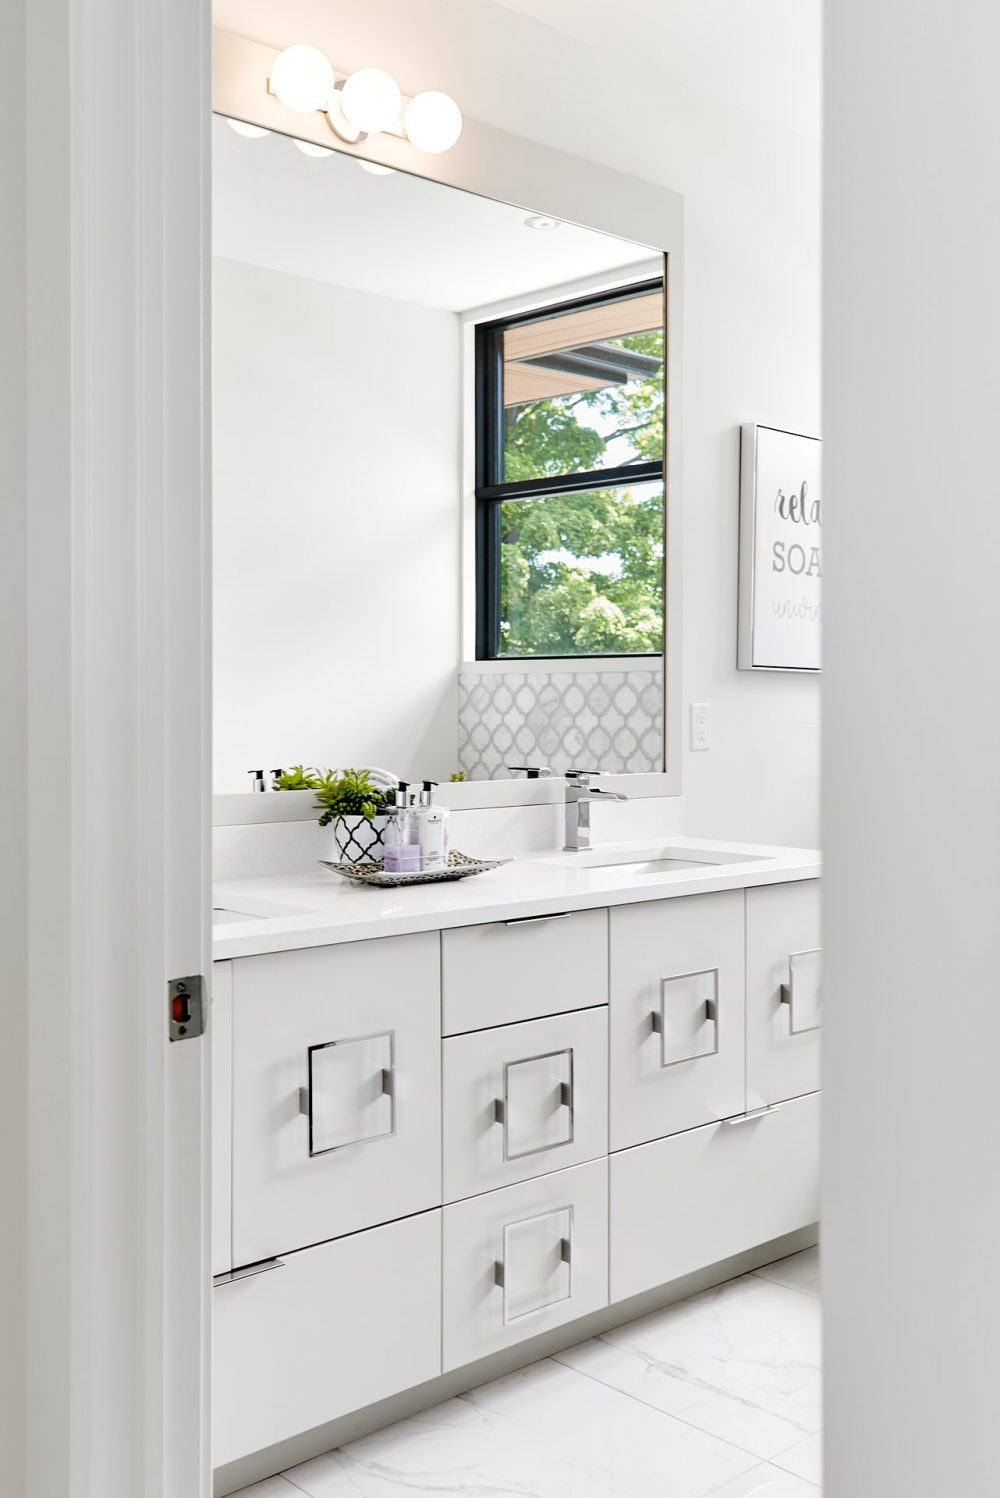 Architecture interior photography of a white bathroom with modern stainless steel drawer handles designed by Barzotti Woodworking LTD. Photographed by Brandon Marsh Photography